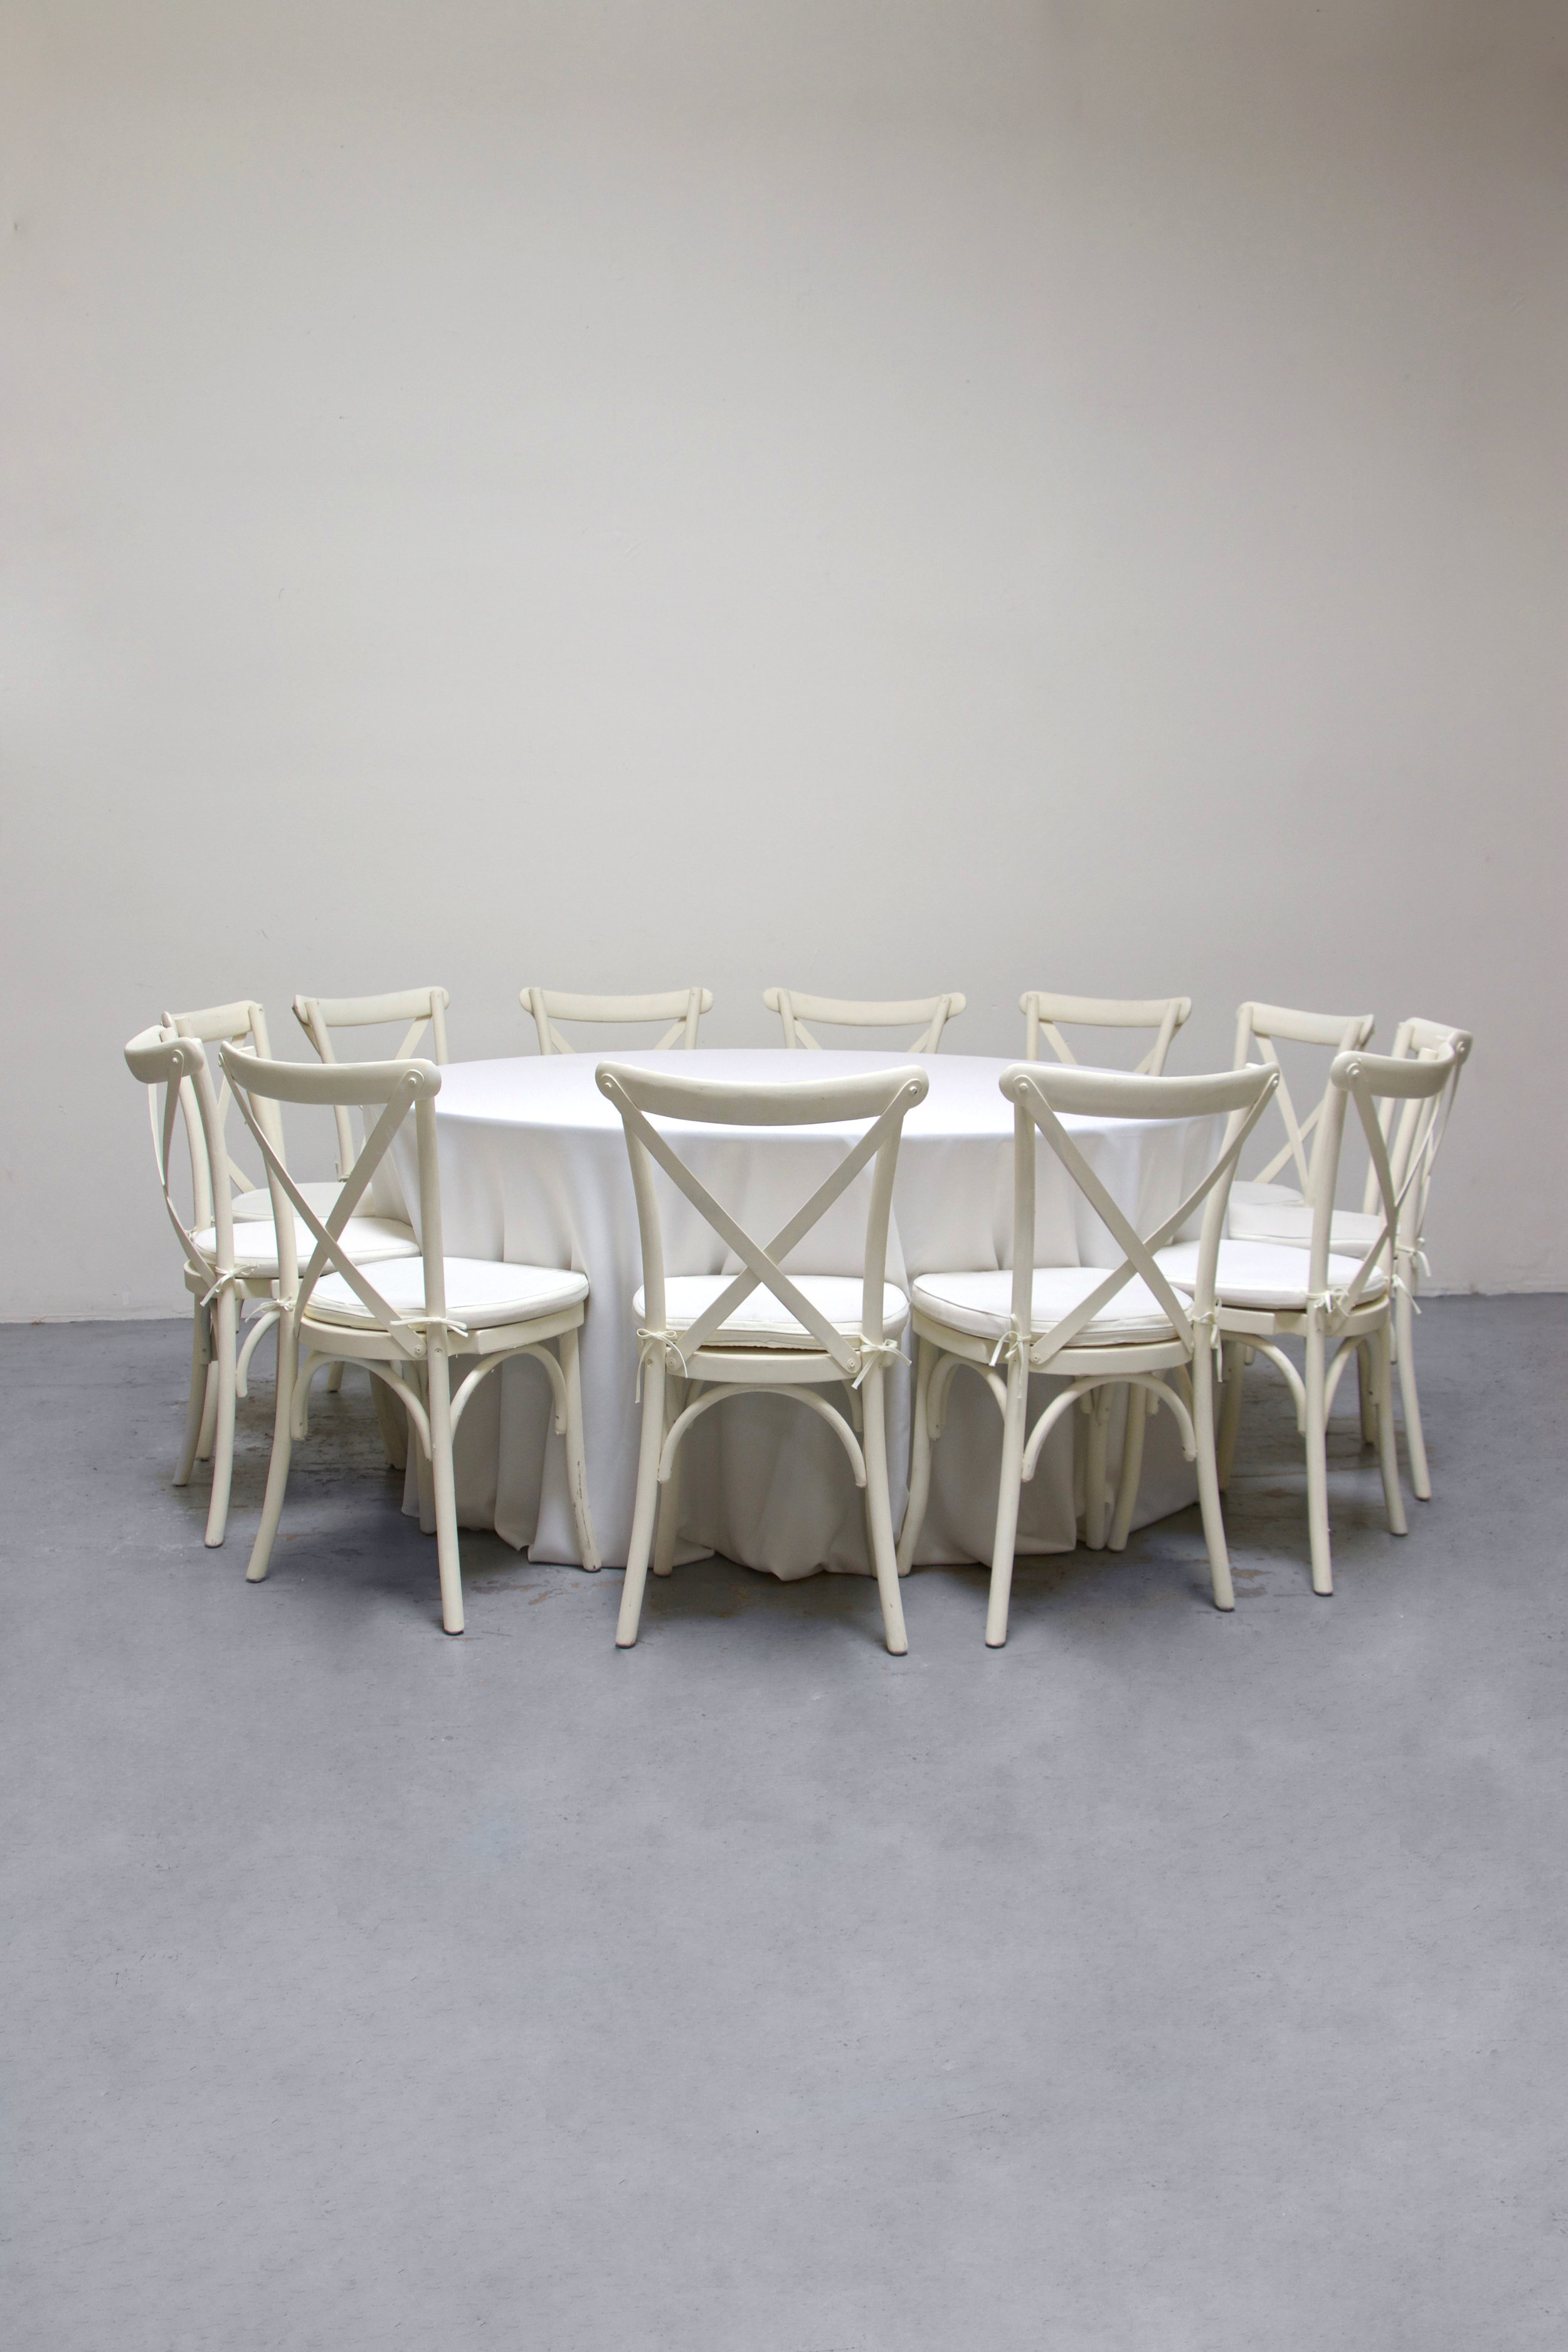 1 Round Banquet w/ 12 Cross-Back Chairs